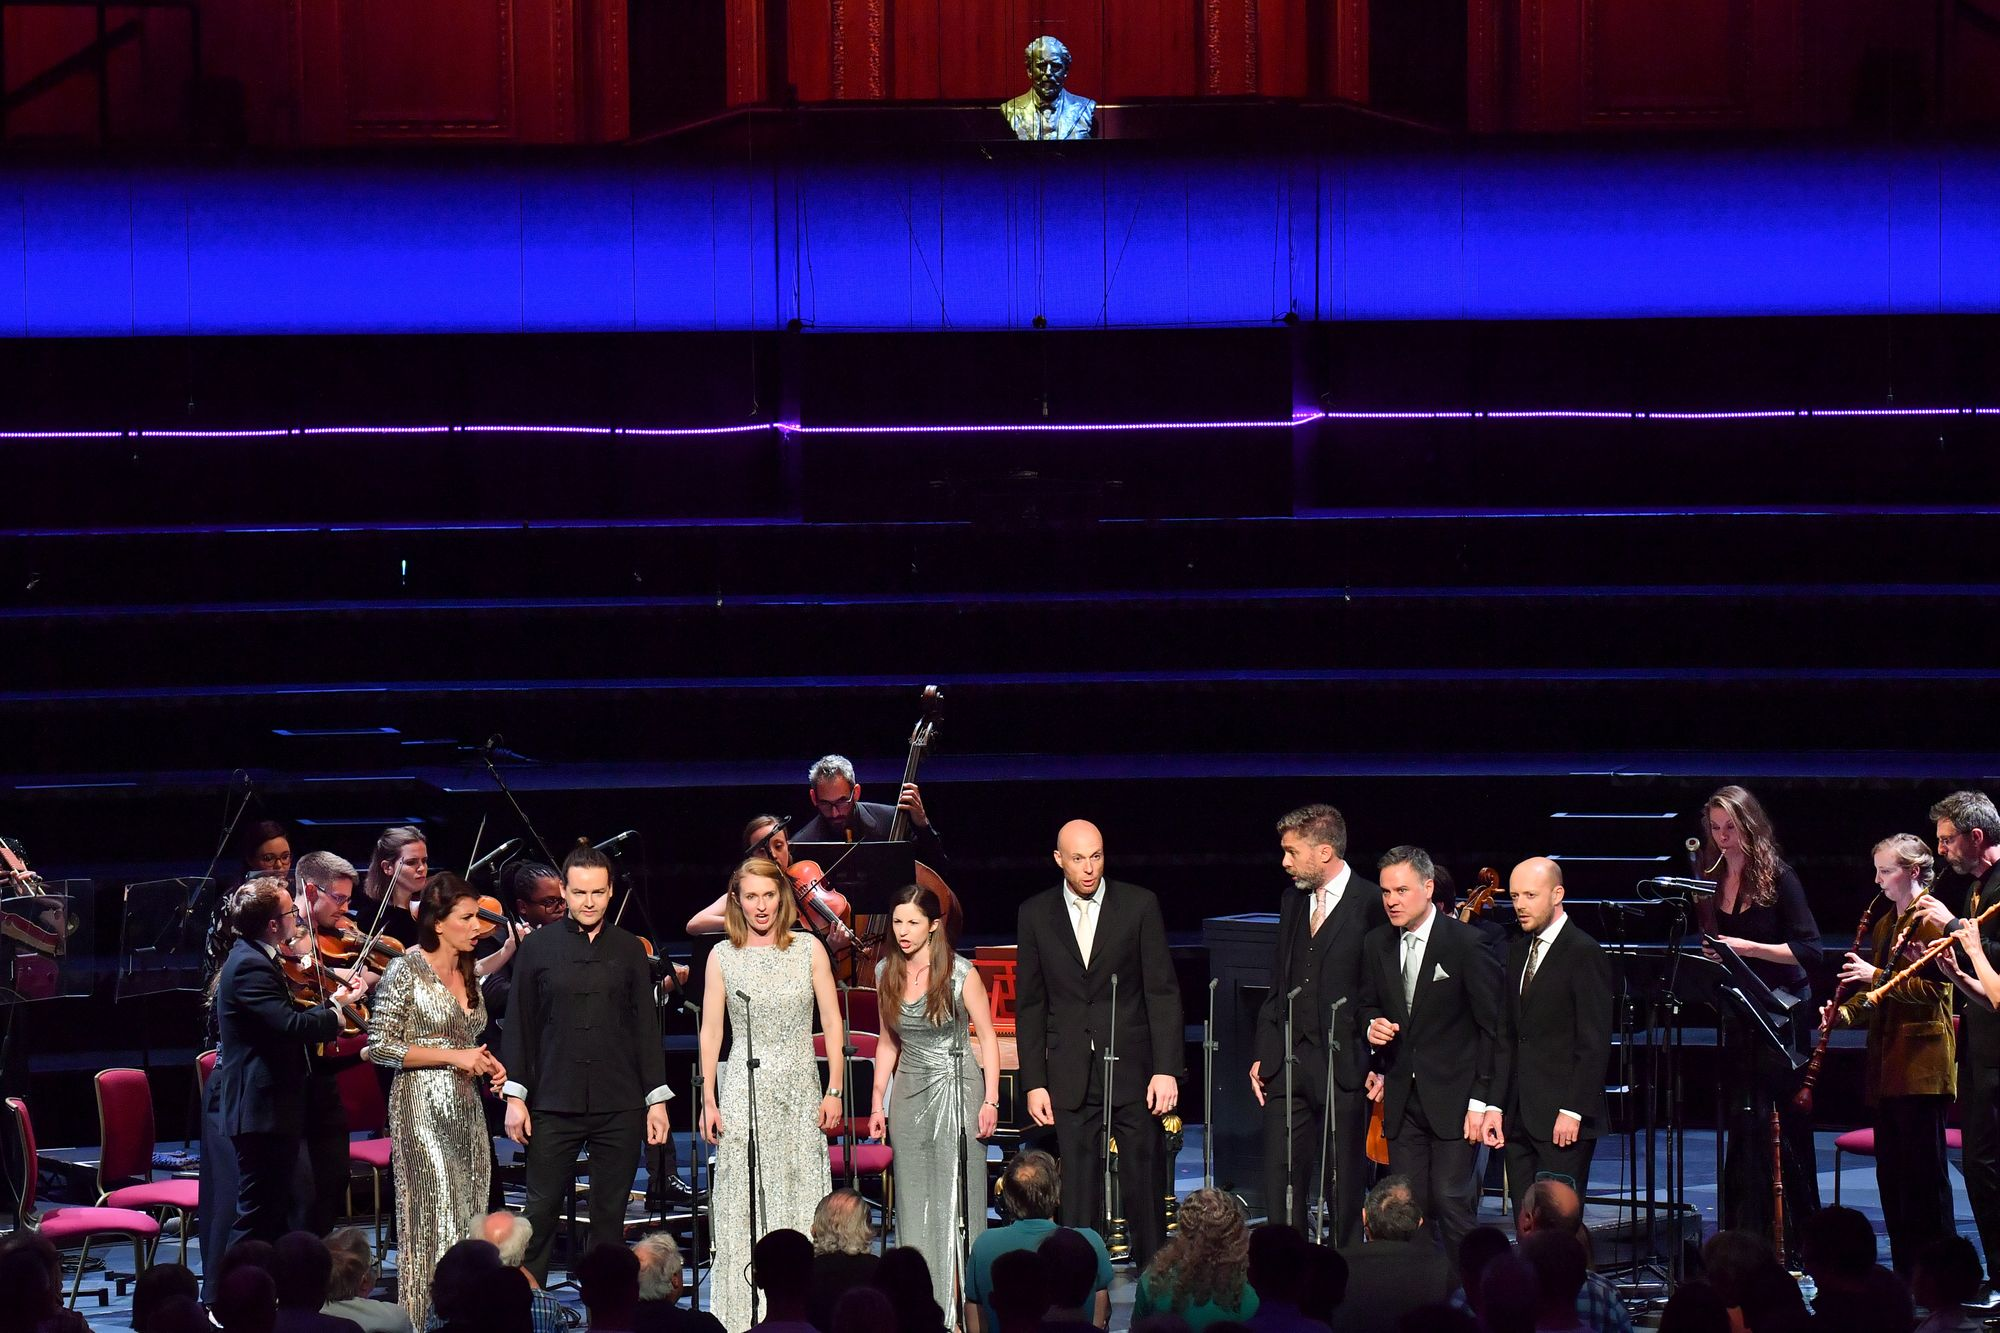 Solomon's Knot at the Proms